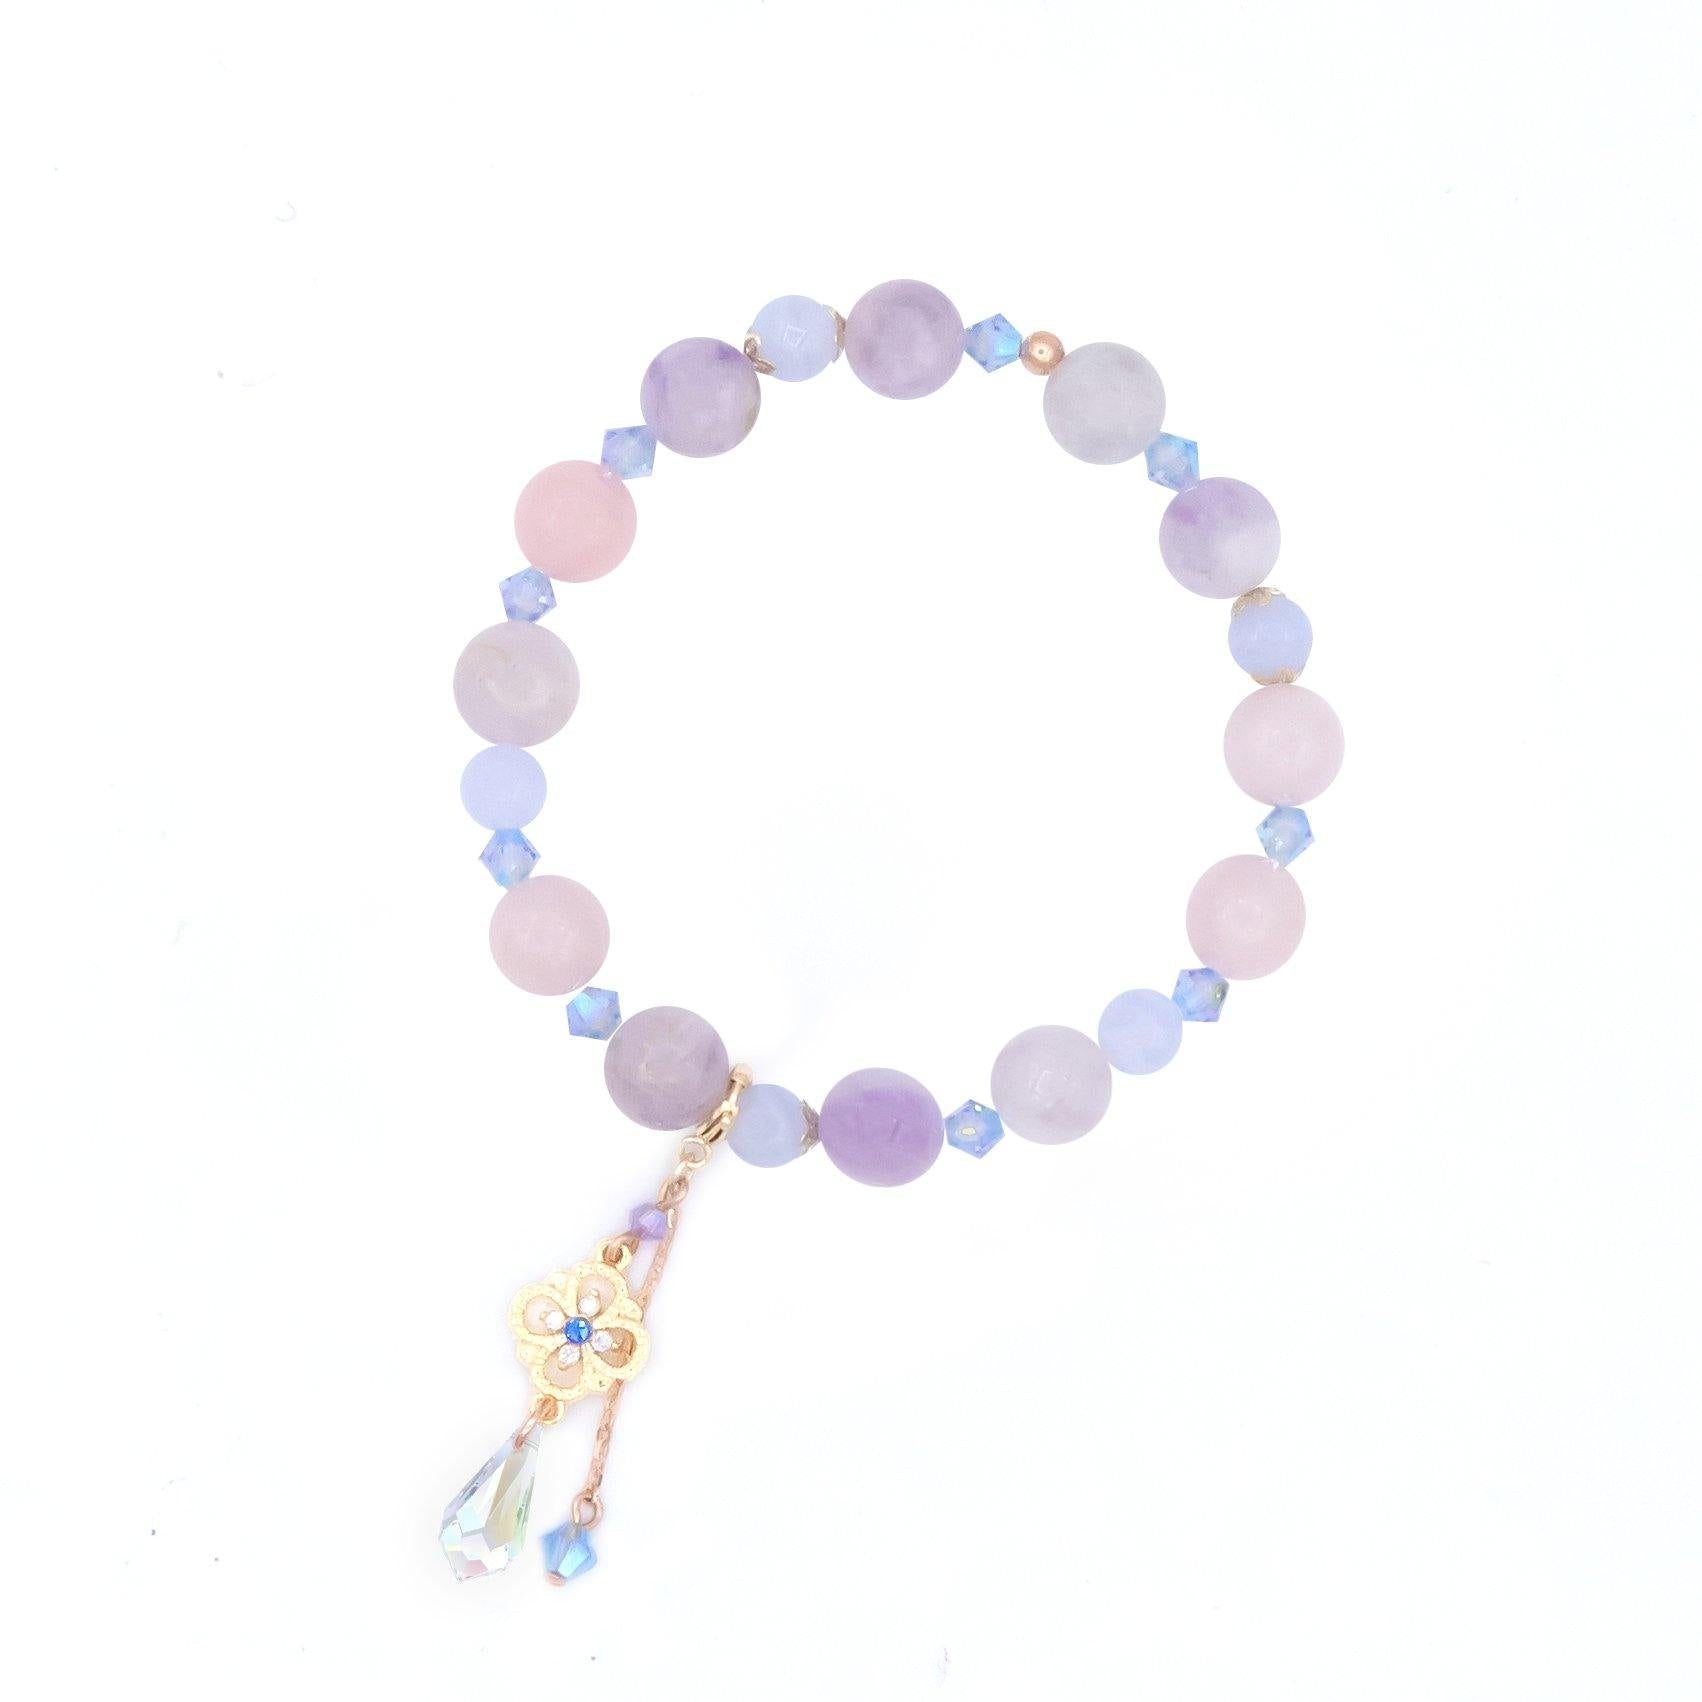 Beyond Dreamy Mixed Natural Quartz Bracelet (with a detachable pendant)